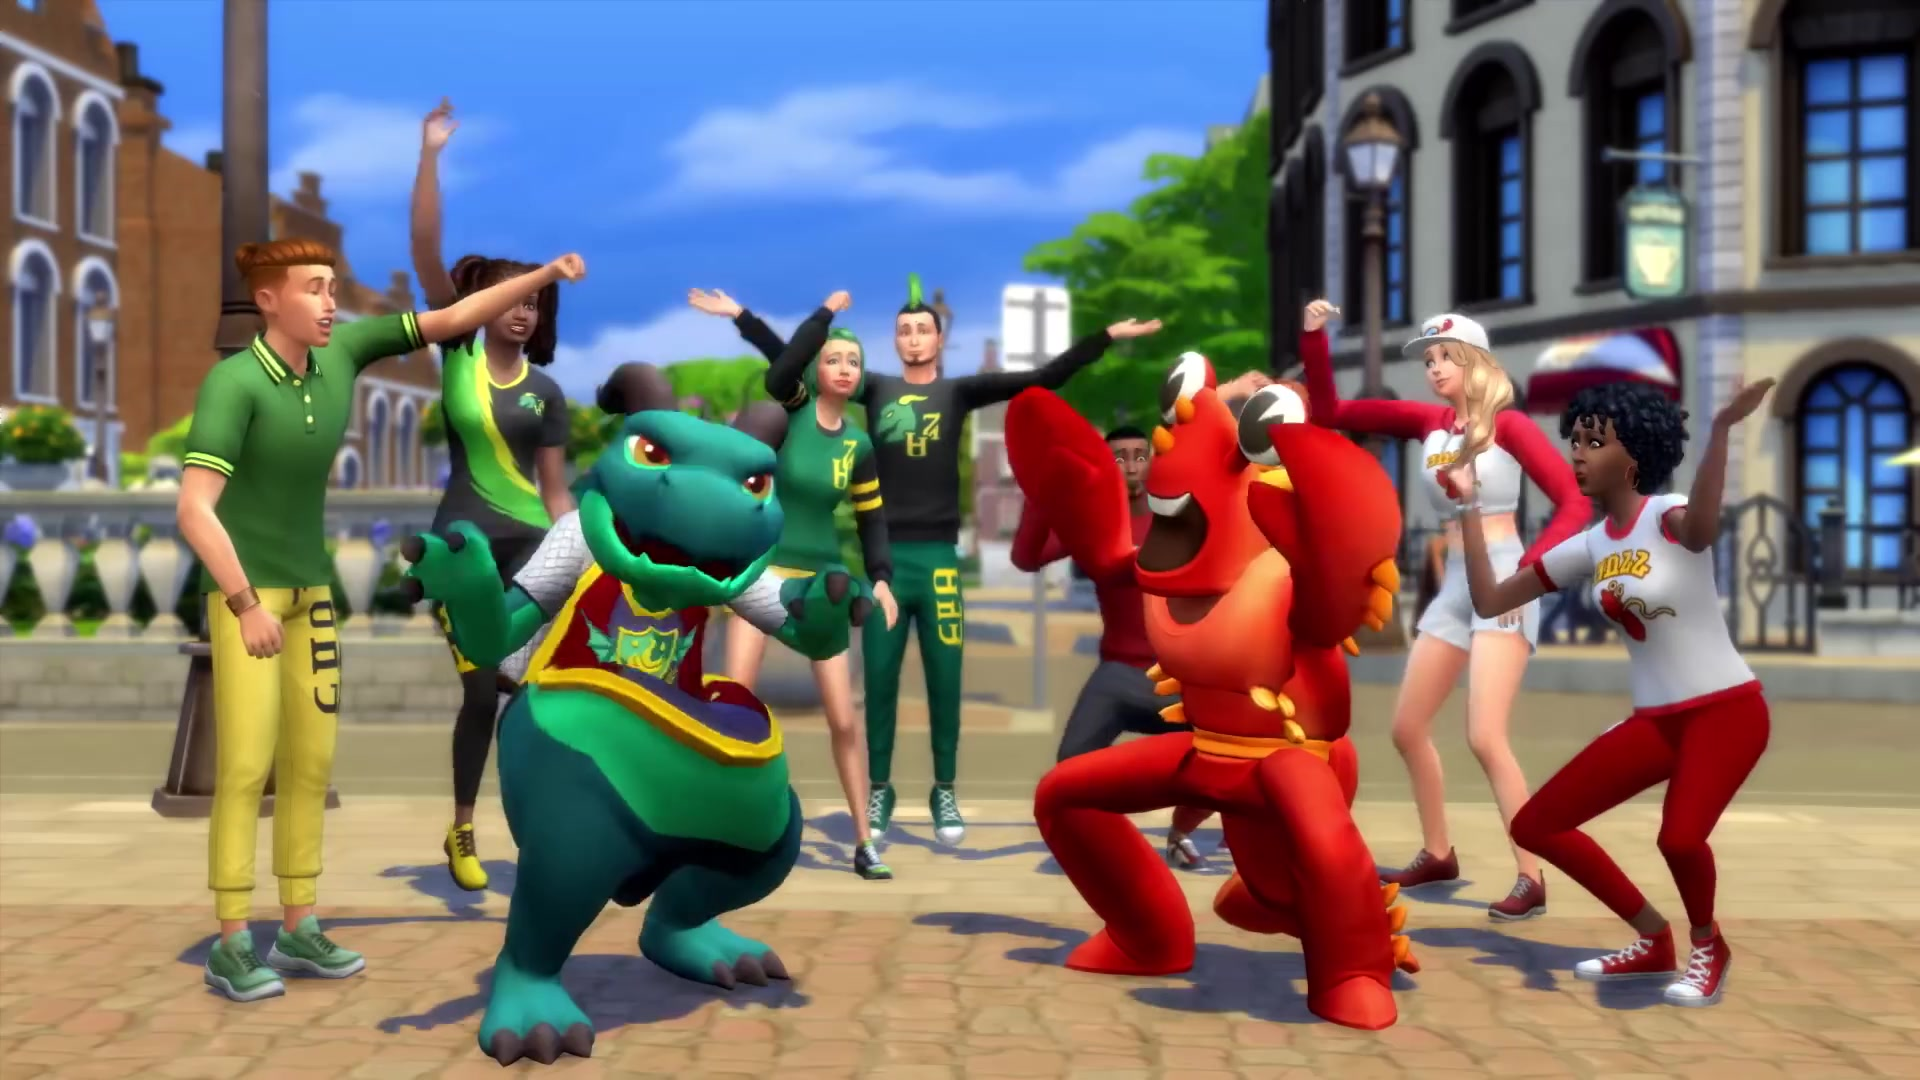 The Sims 4 University is better than actual college